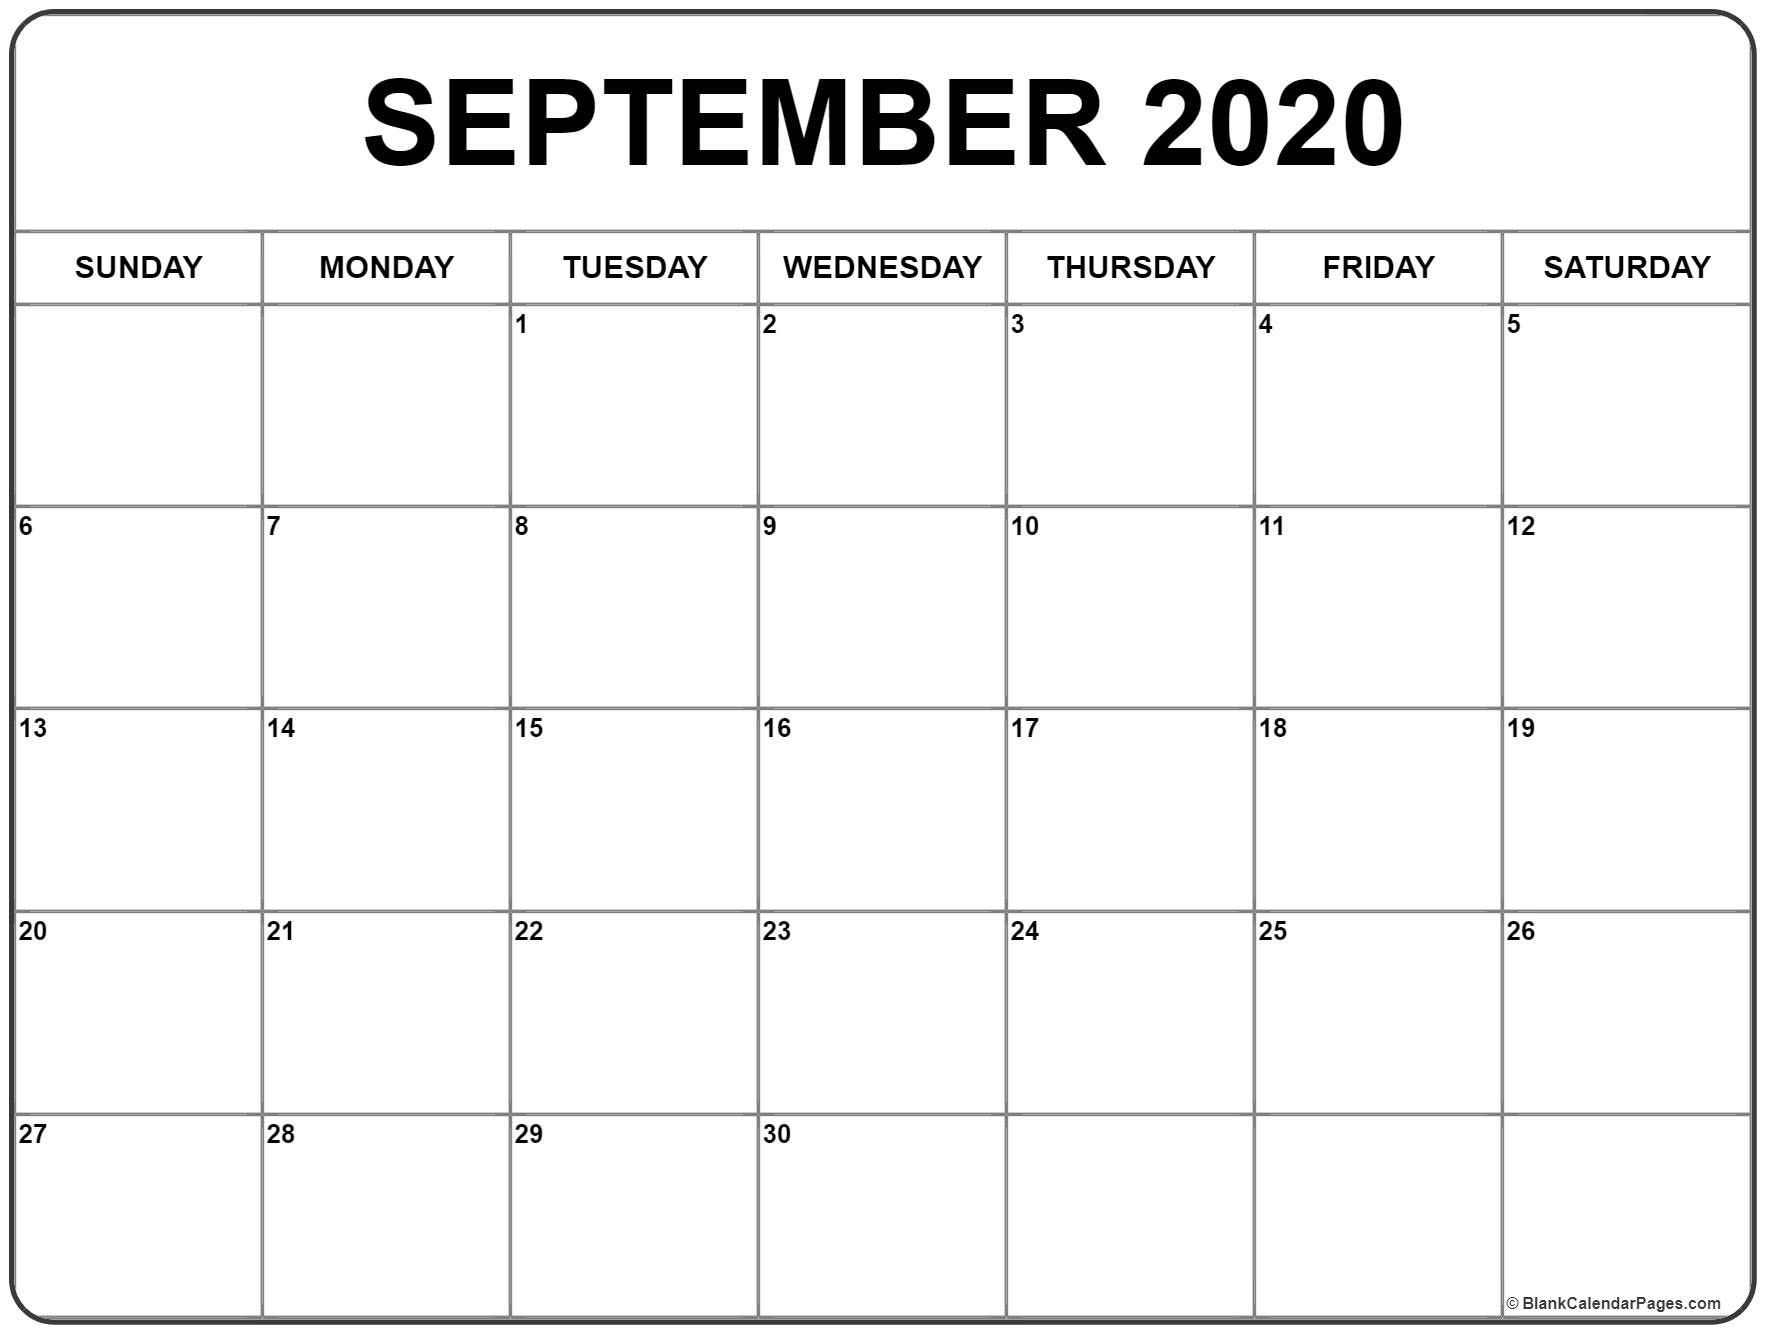 september 2020 calendar 51 calendar templates of 2020 september 1767x1333